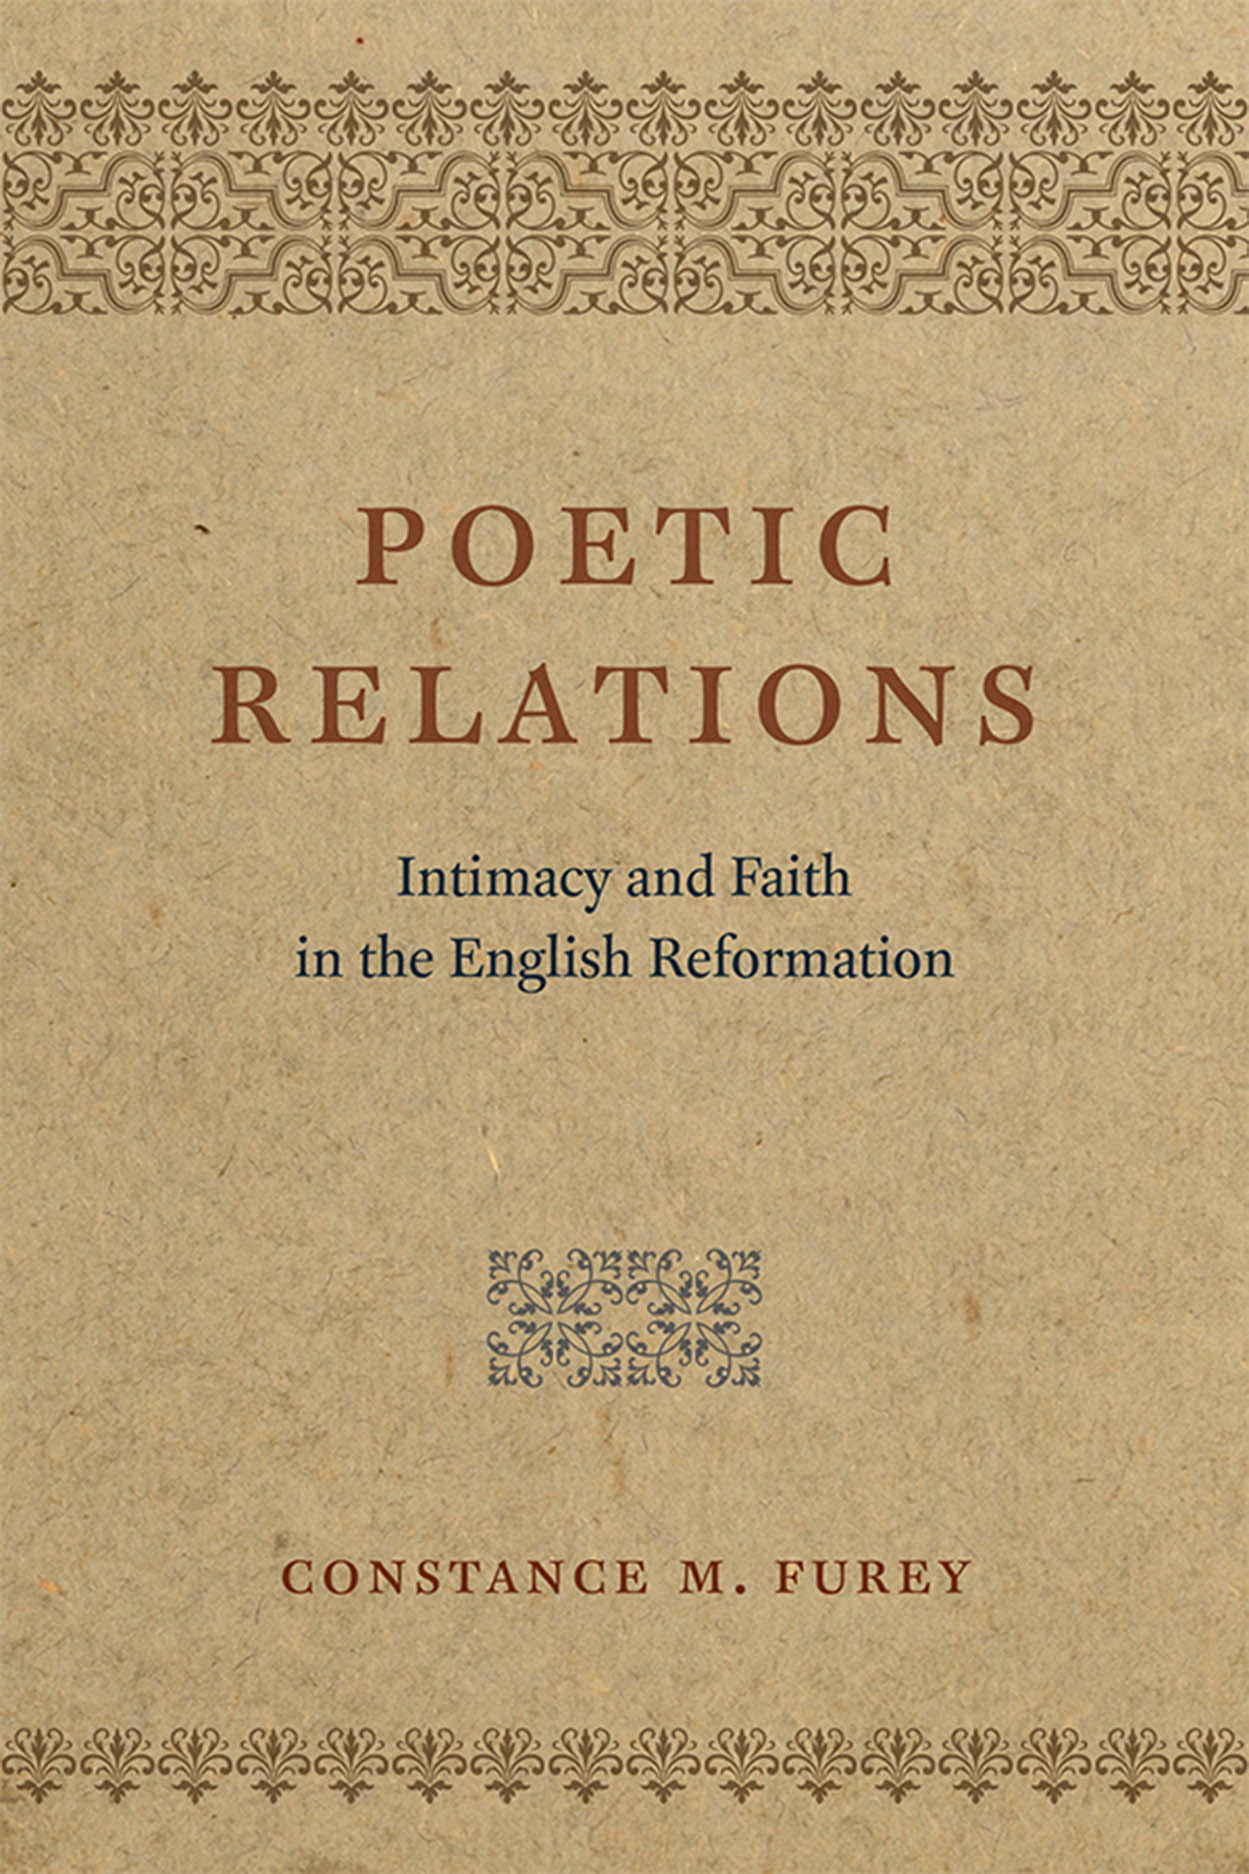 Poetic Relations: Intimacy and Faith in the English Reformation